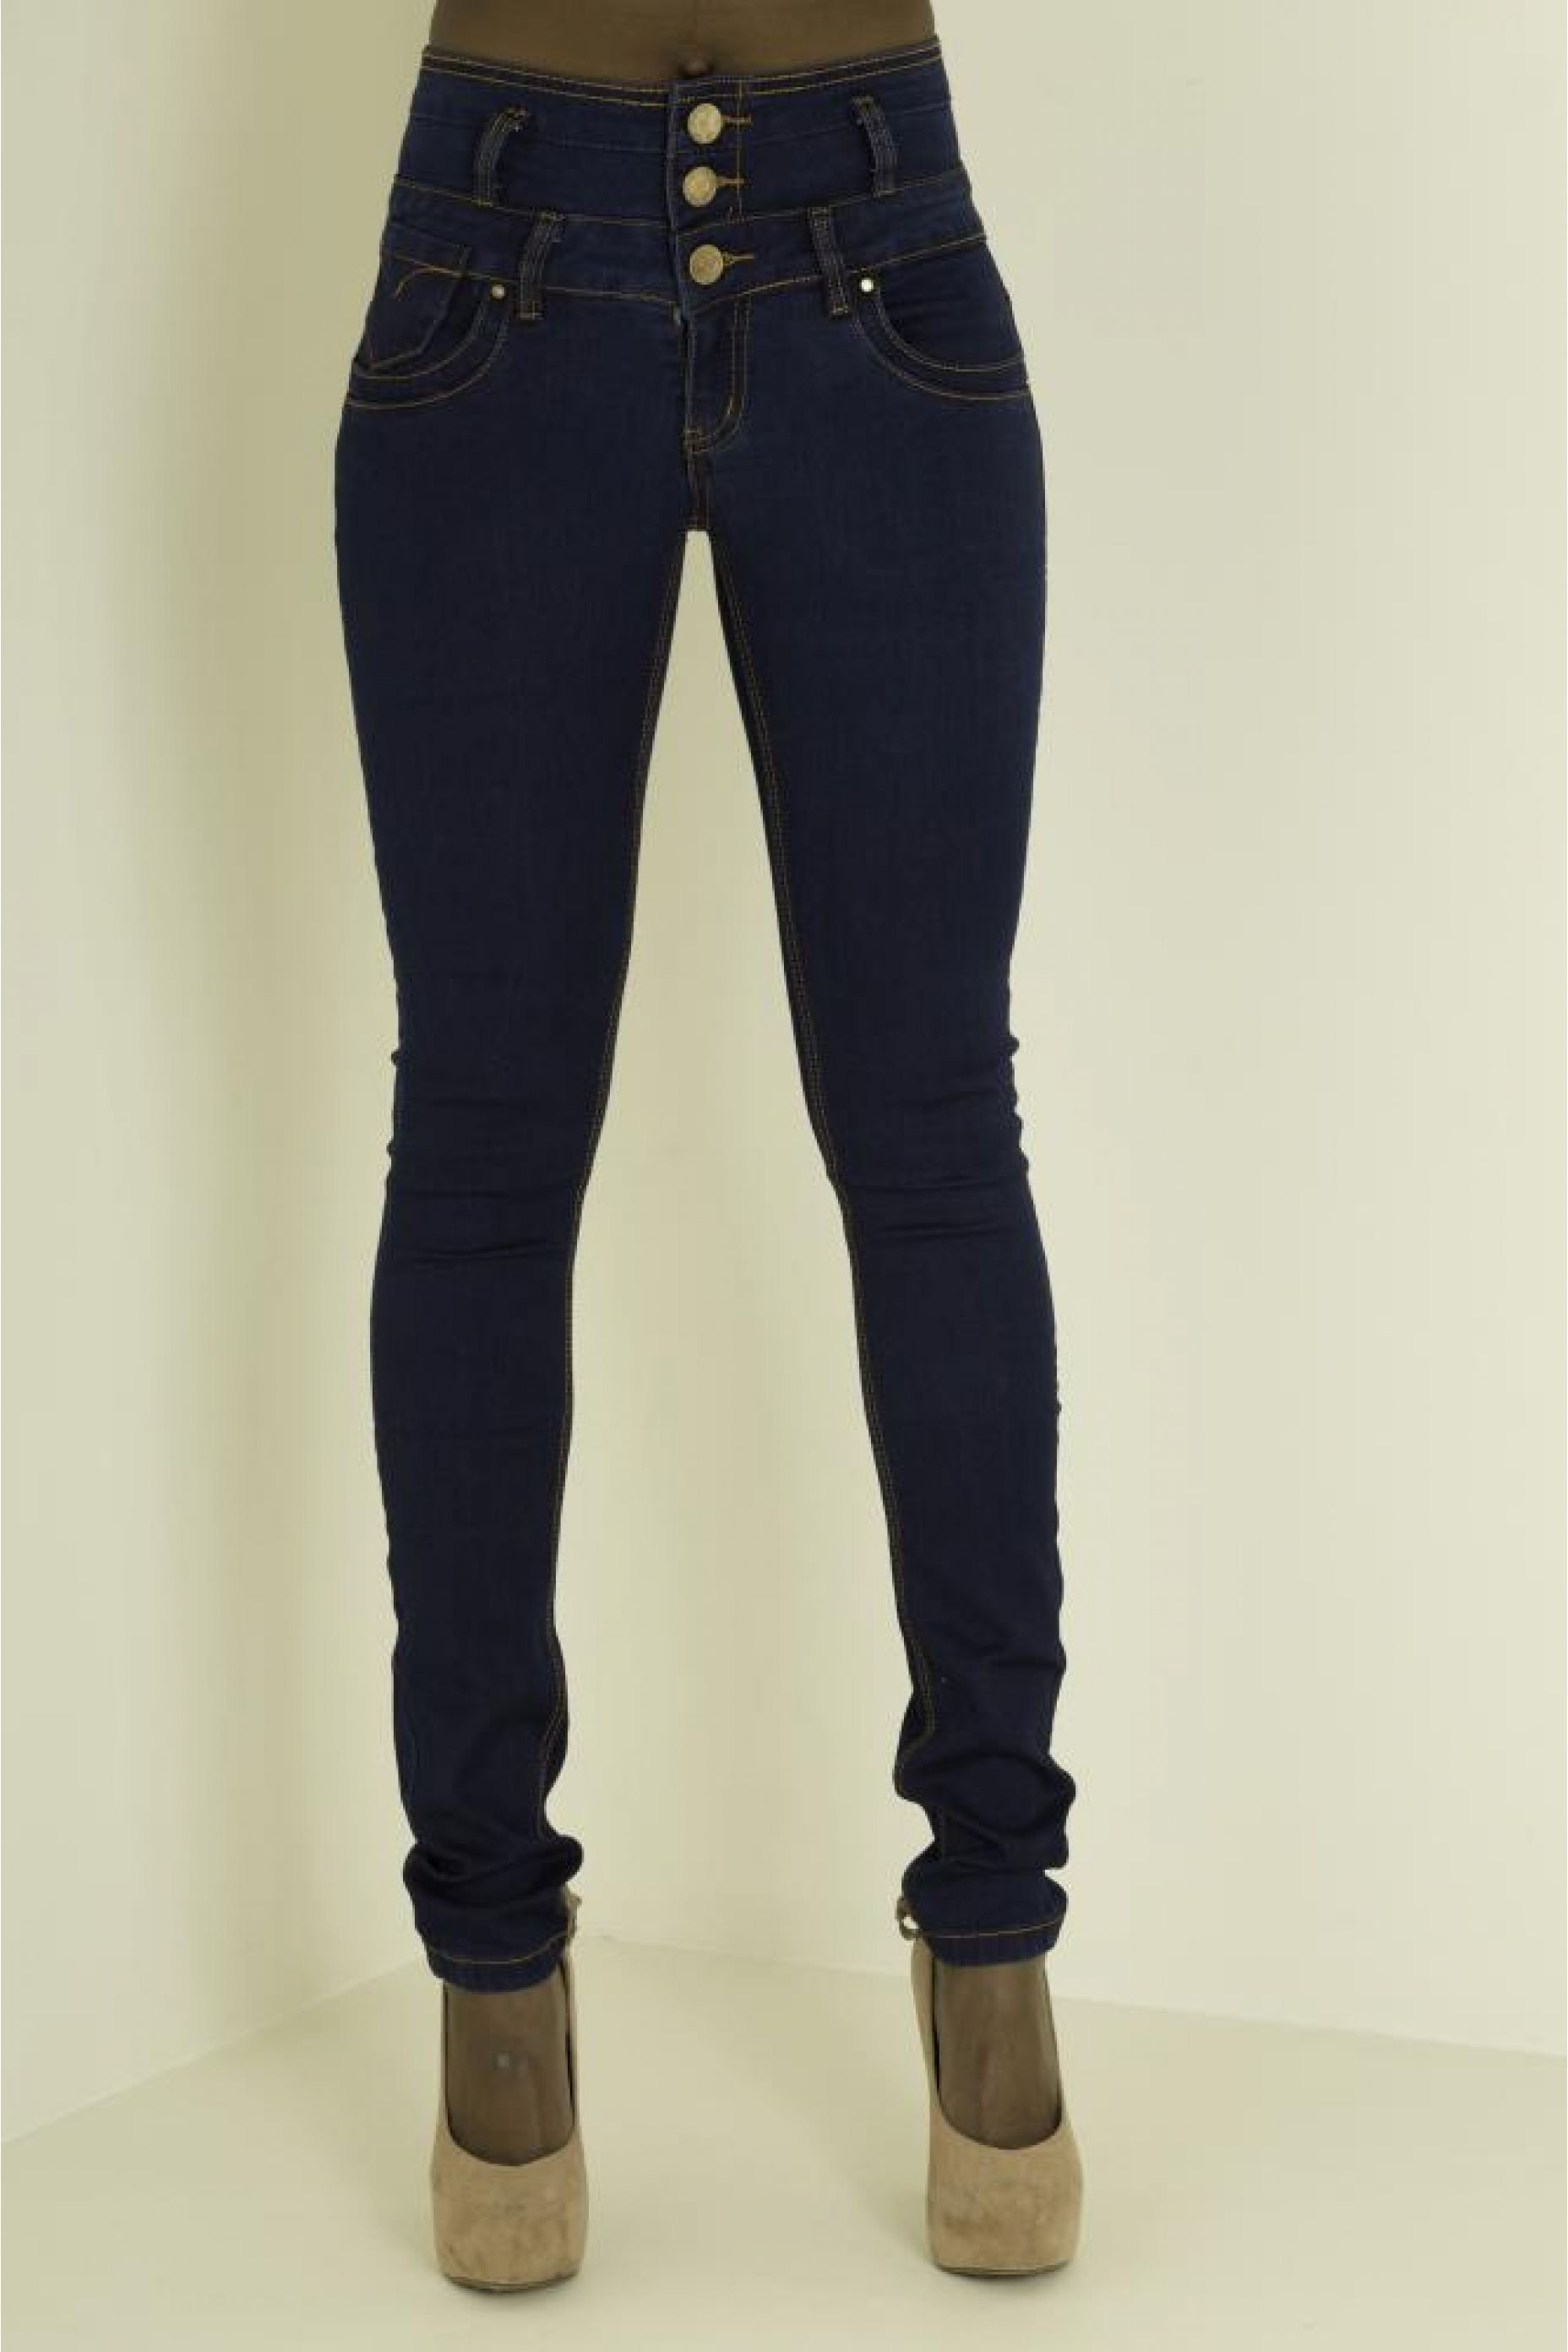 c757aa8b2a0 LONG LENGTH 3 BUTTON HIGH WAIST JEANS Sexy Jeans, Black Jeans, Skinny Jeans,